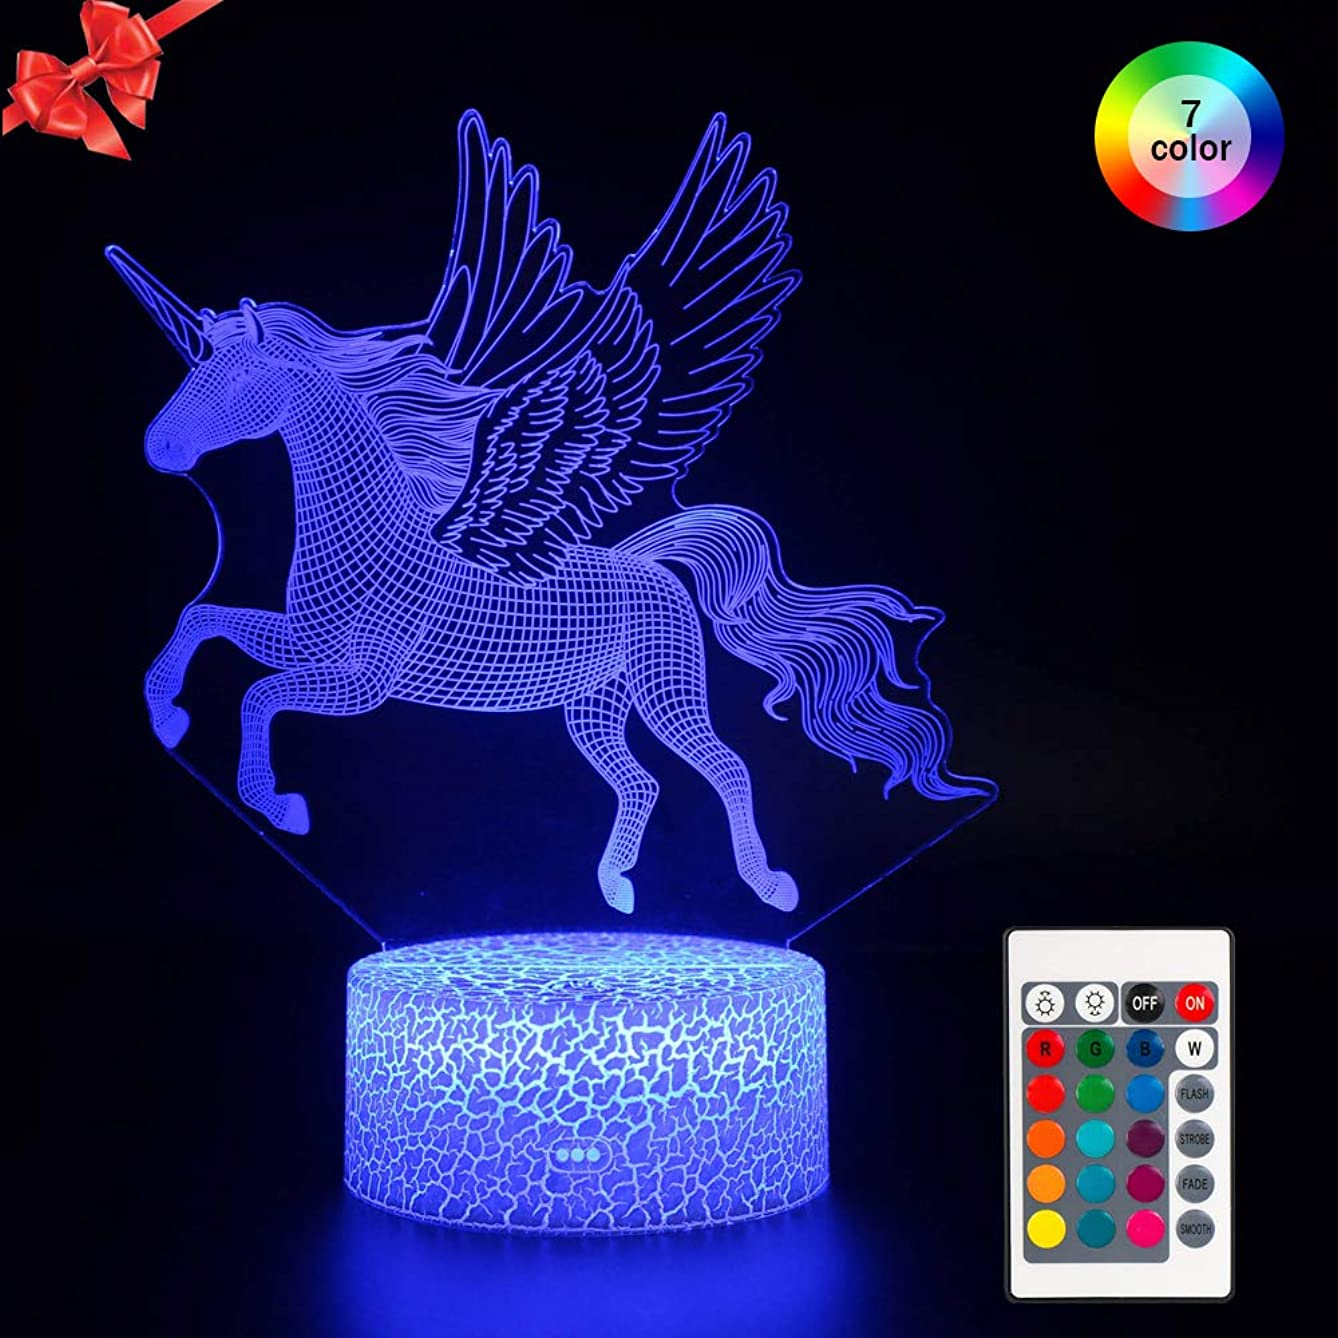 Unicorn Night Light for Kids, Dimmable Bedside Lamp Nightlight 7 Colors, Touch &Remote Control USB & Battery Powered Flying Unicorn Toys Birthday Gift for Men Women Boys Girls